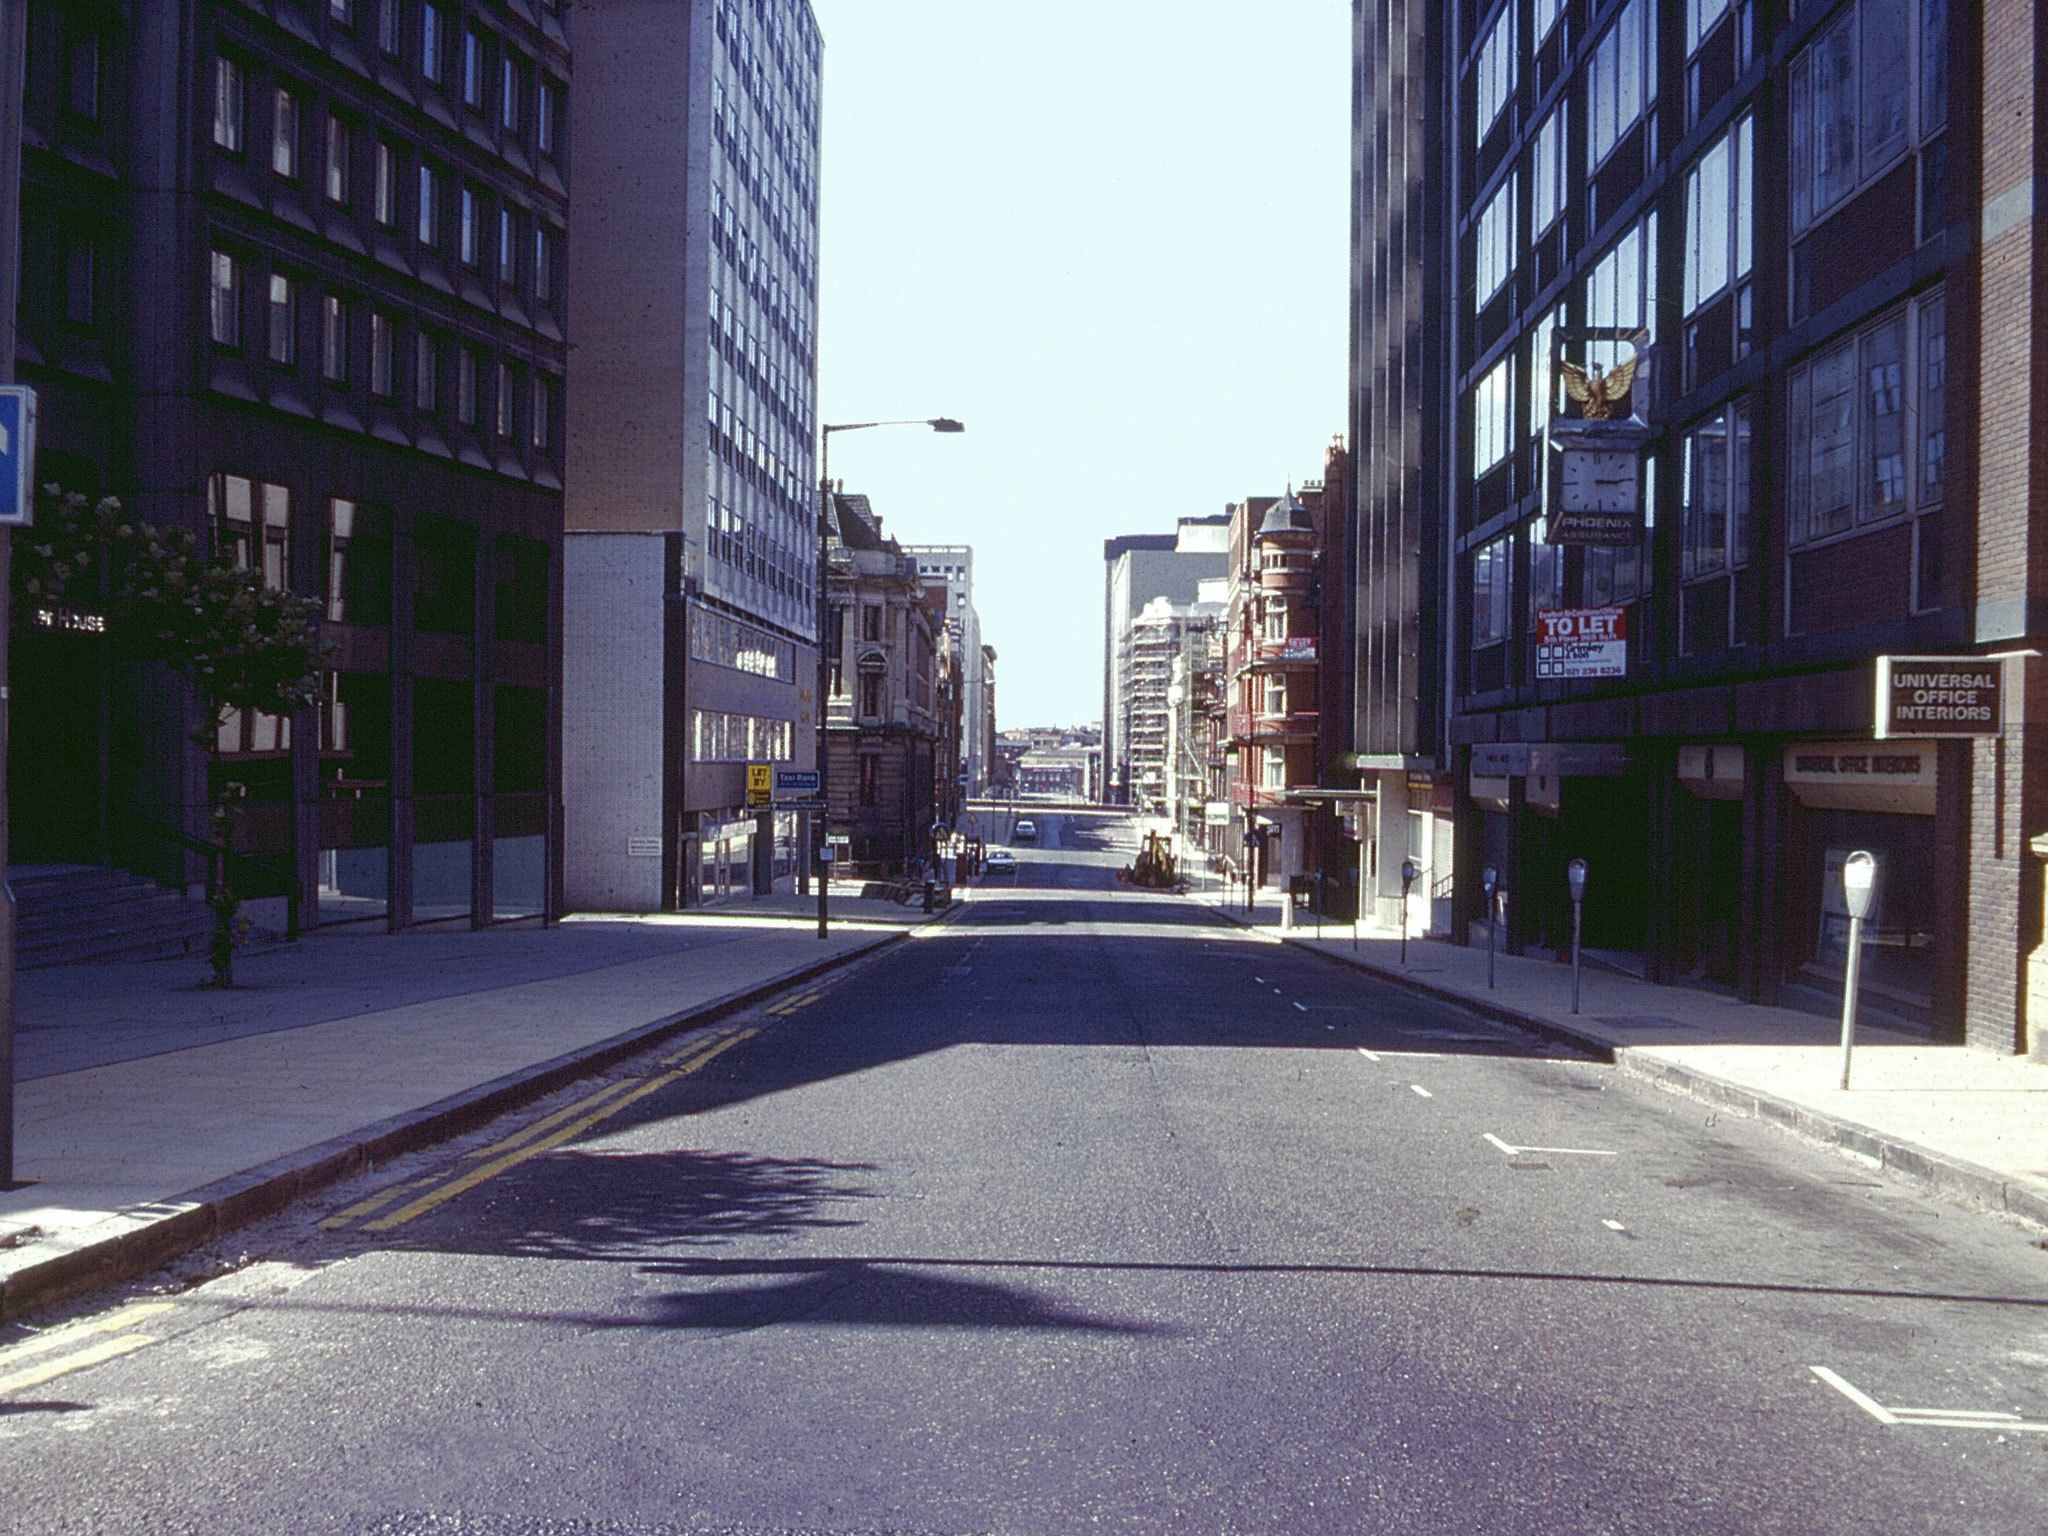 Birmingham in the '80s, Newhall Street